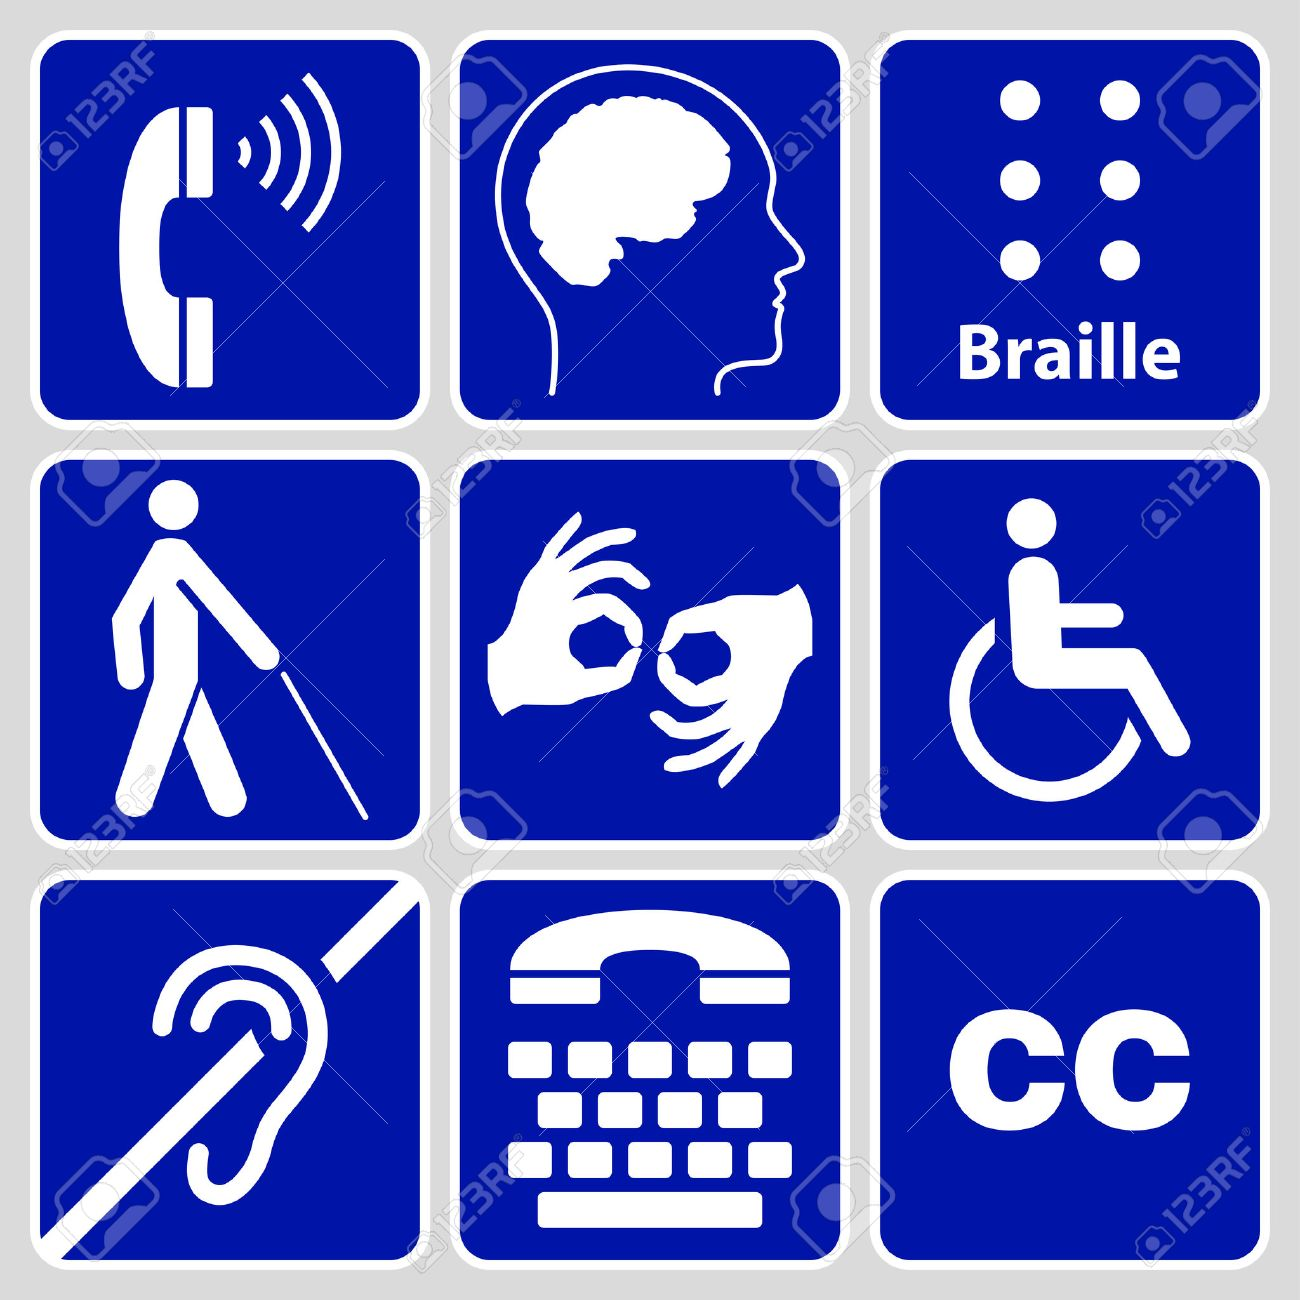 Blue disability symbols and signs collection may be used to blue disability symbols and signs collection may be used to publicize accessibility of places biocorpaavc